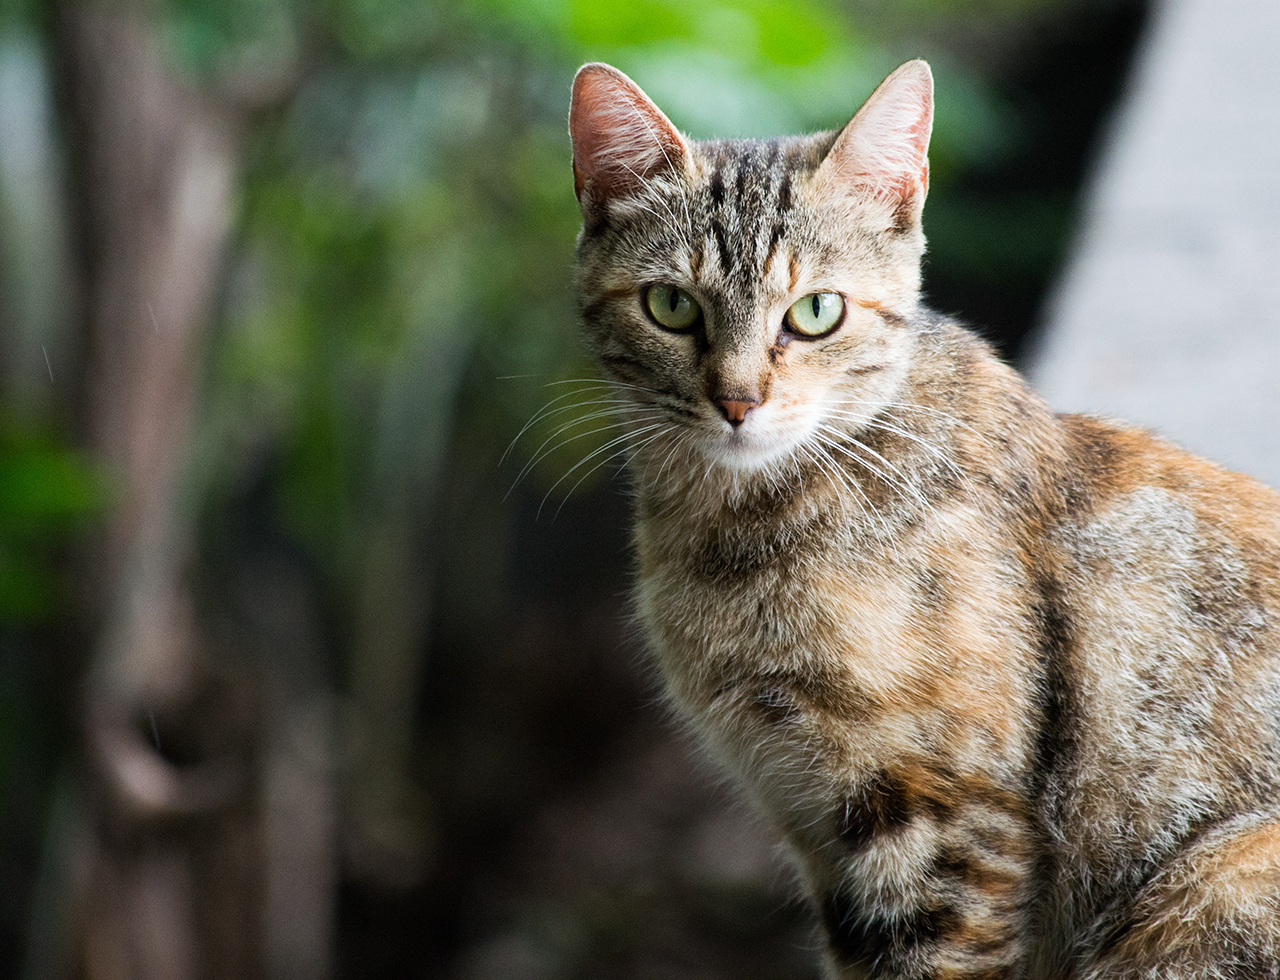 Cat diseases have $6 billion impact on human health in Australia